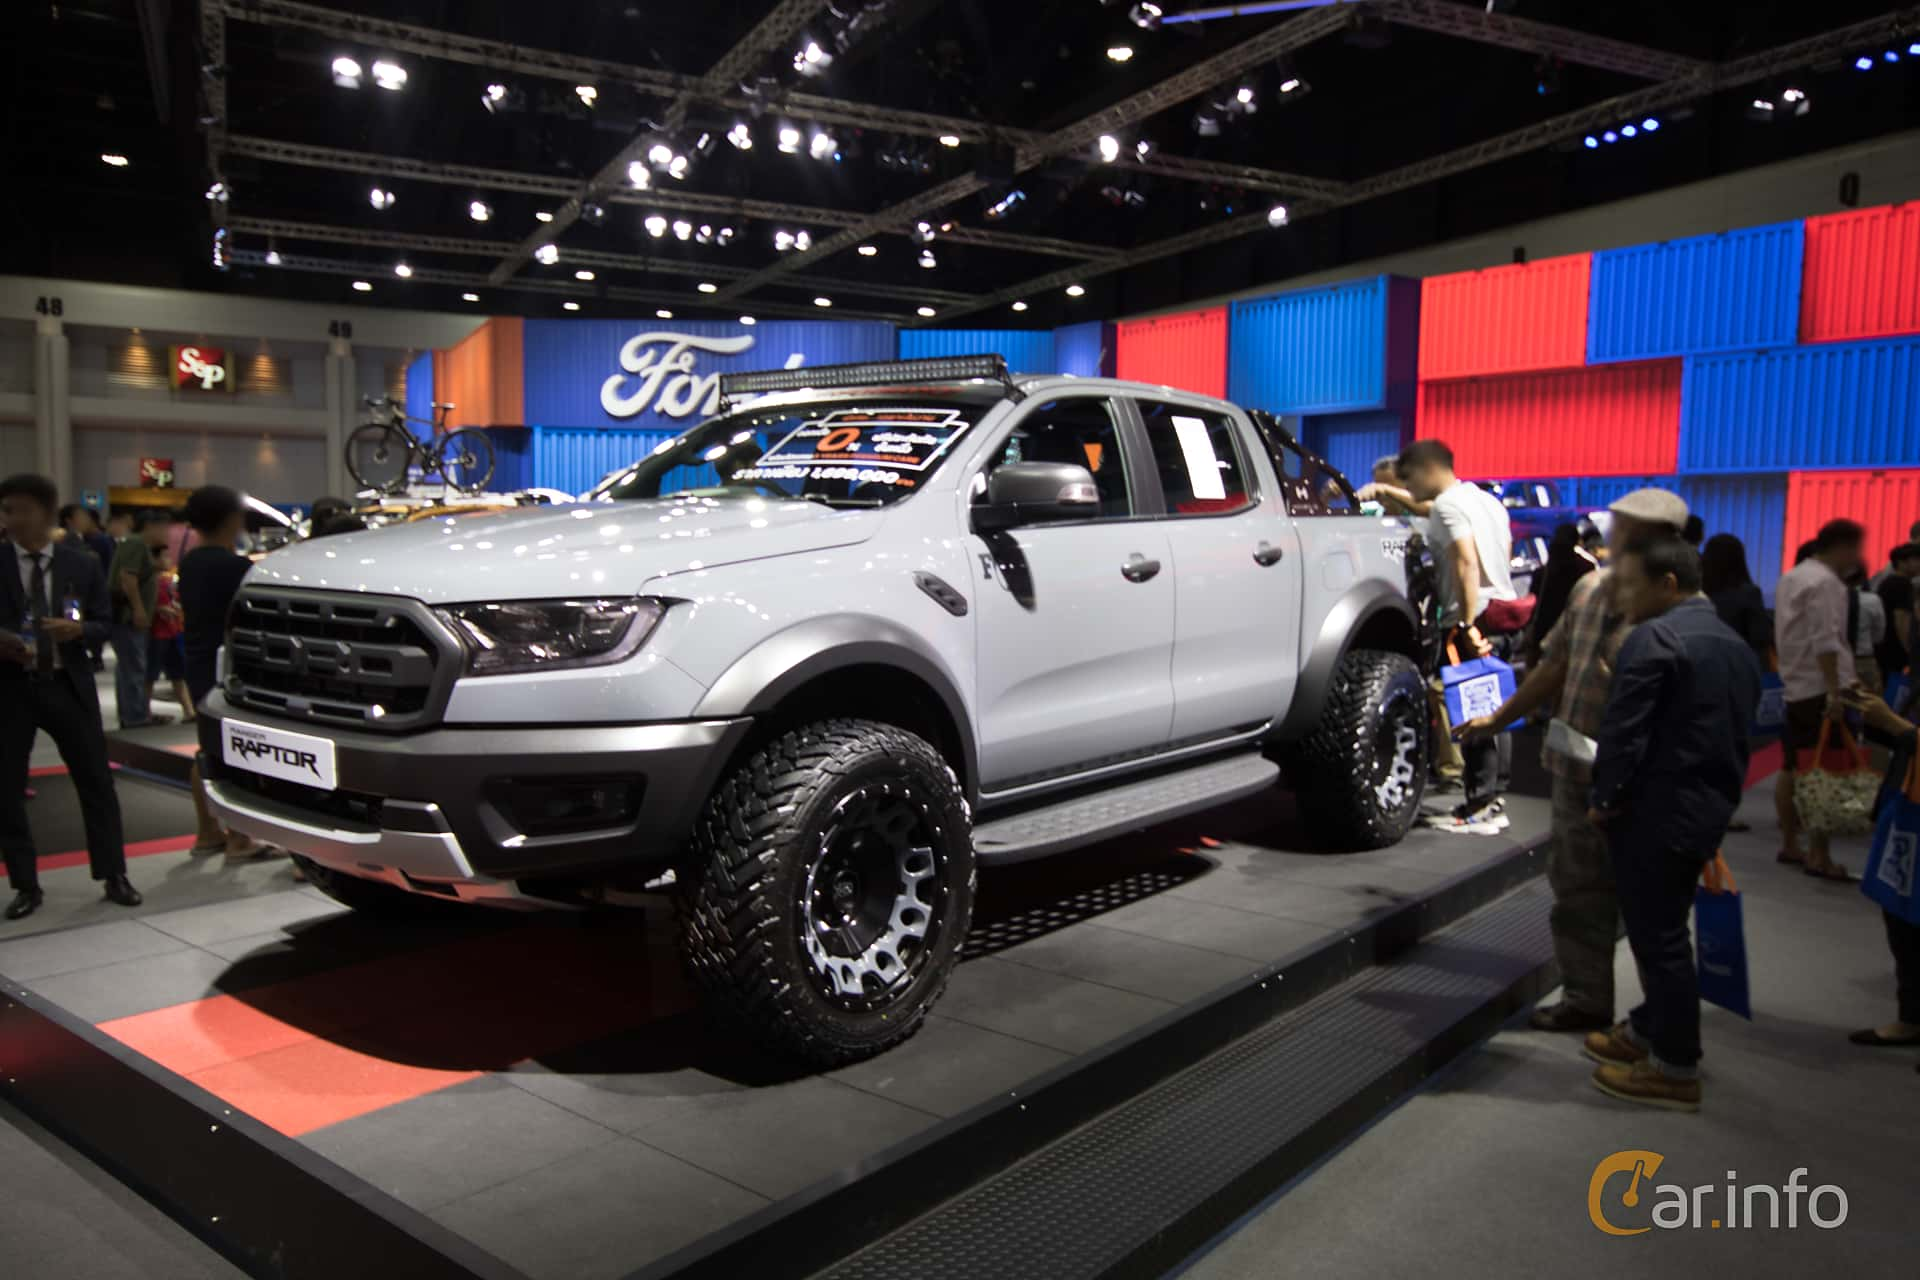 Ford Ranger Raptor 2.0 EcoBlue 4x4 Automatic, 213hp, 2019 at Bangkok Motor Show 2019